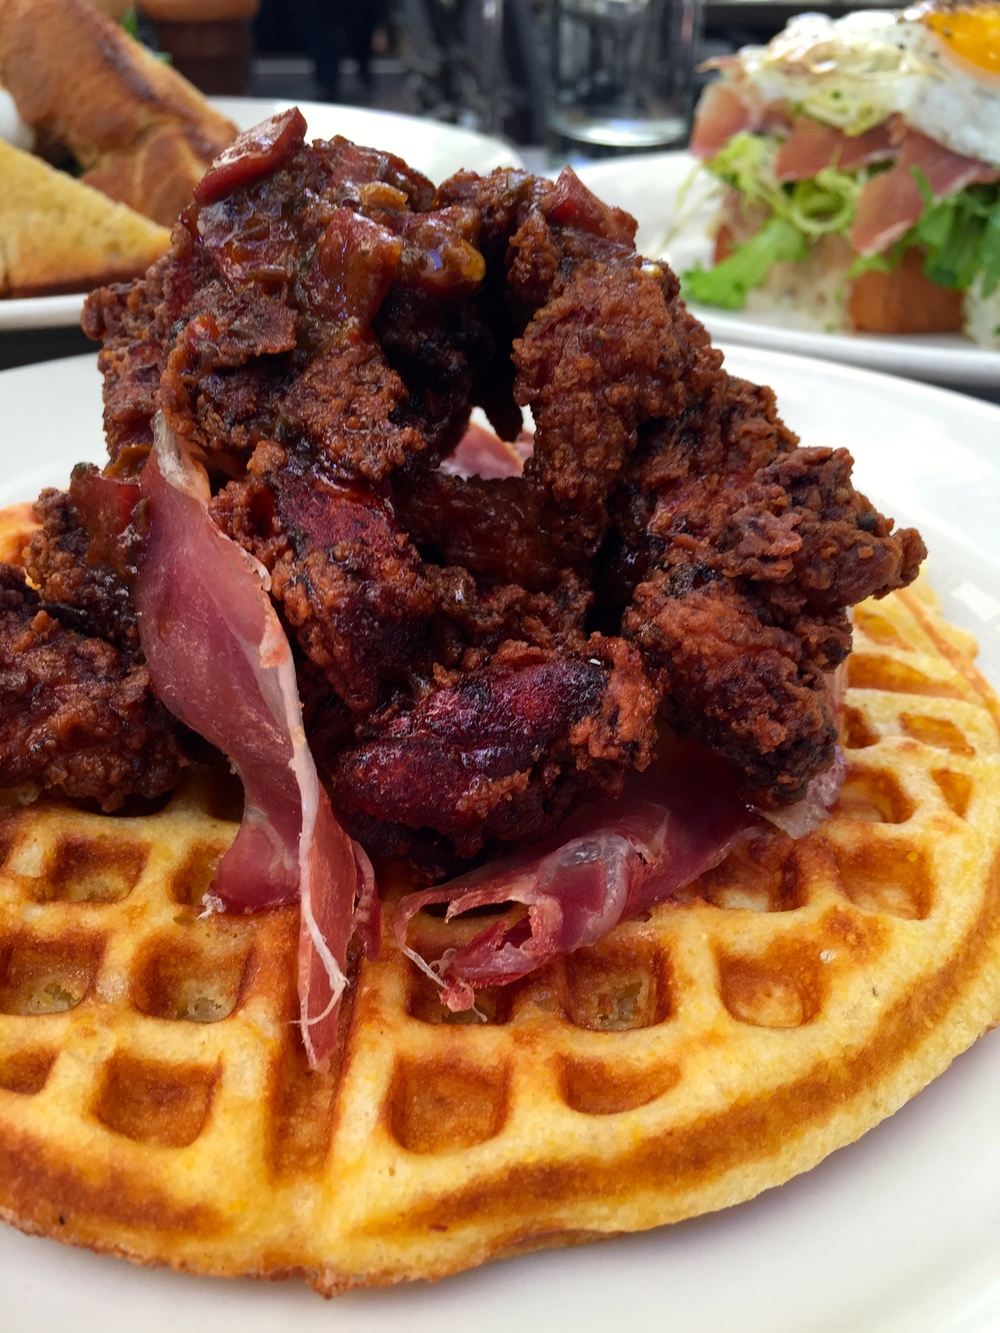 Spanish fried chicken & cornmeal waffle jamon butter & maple syrup.